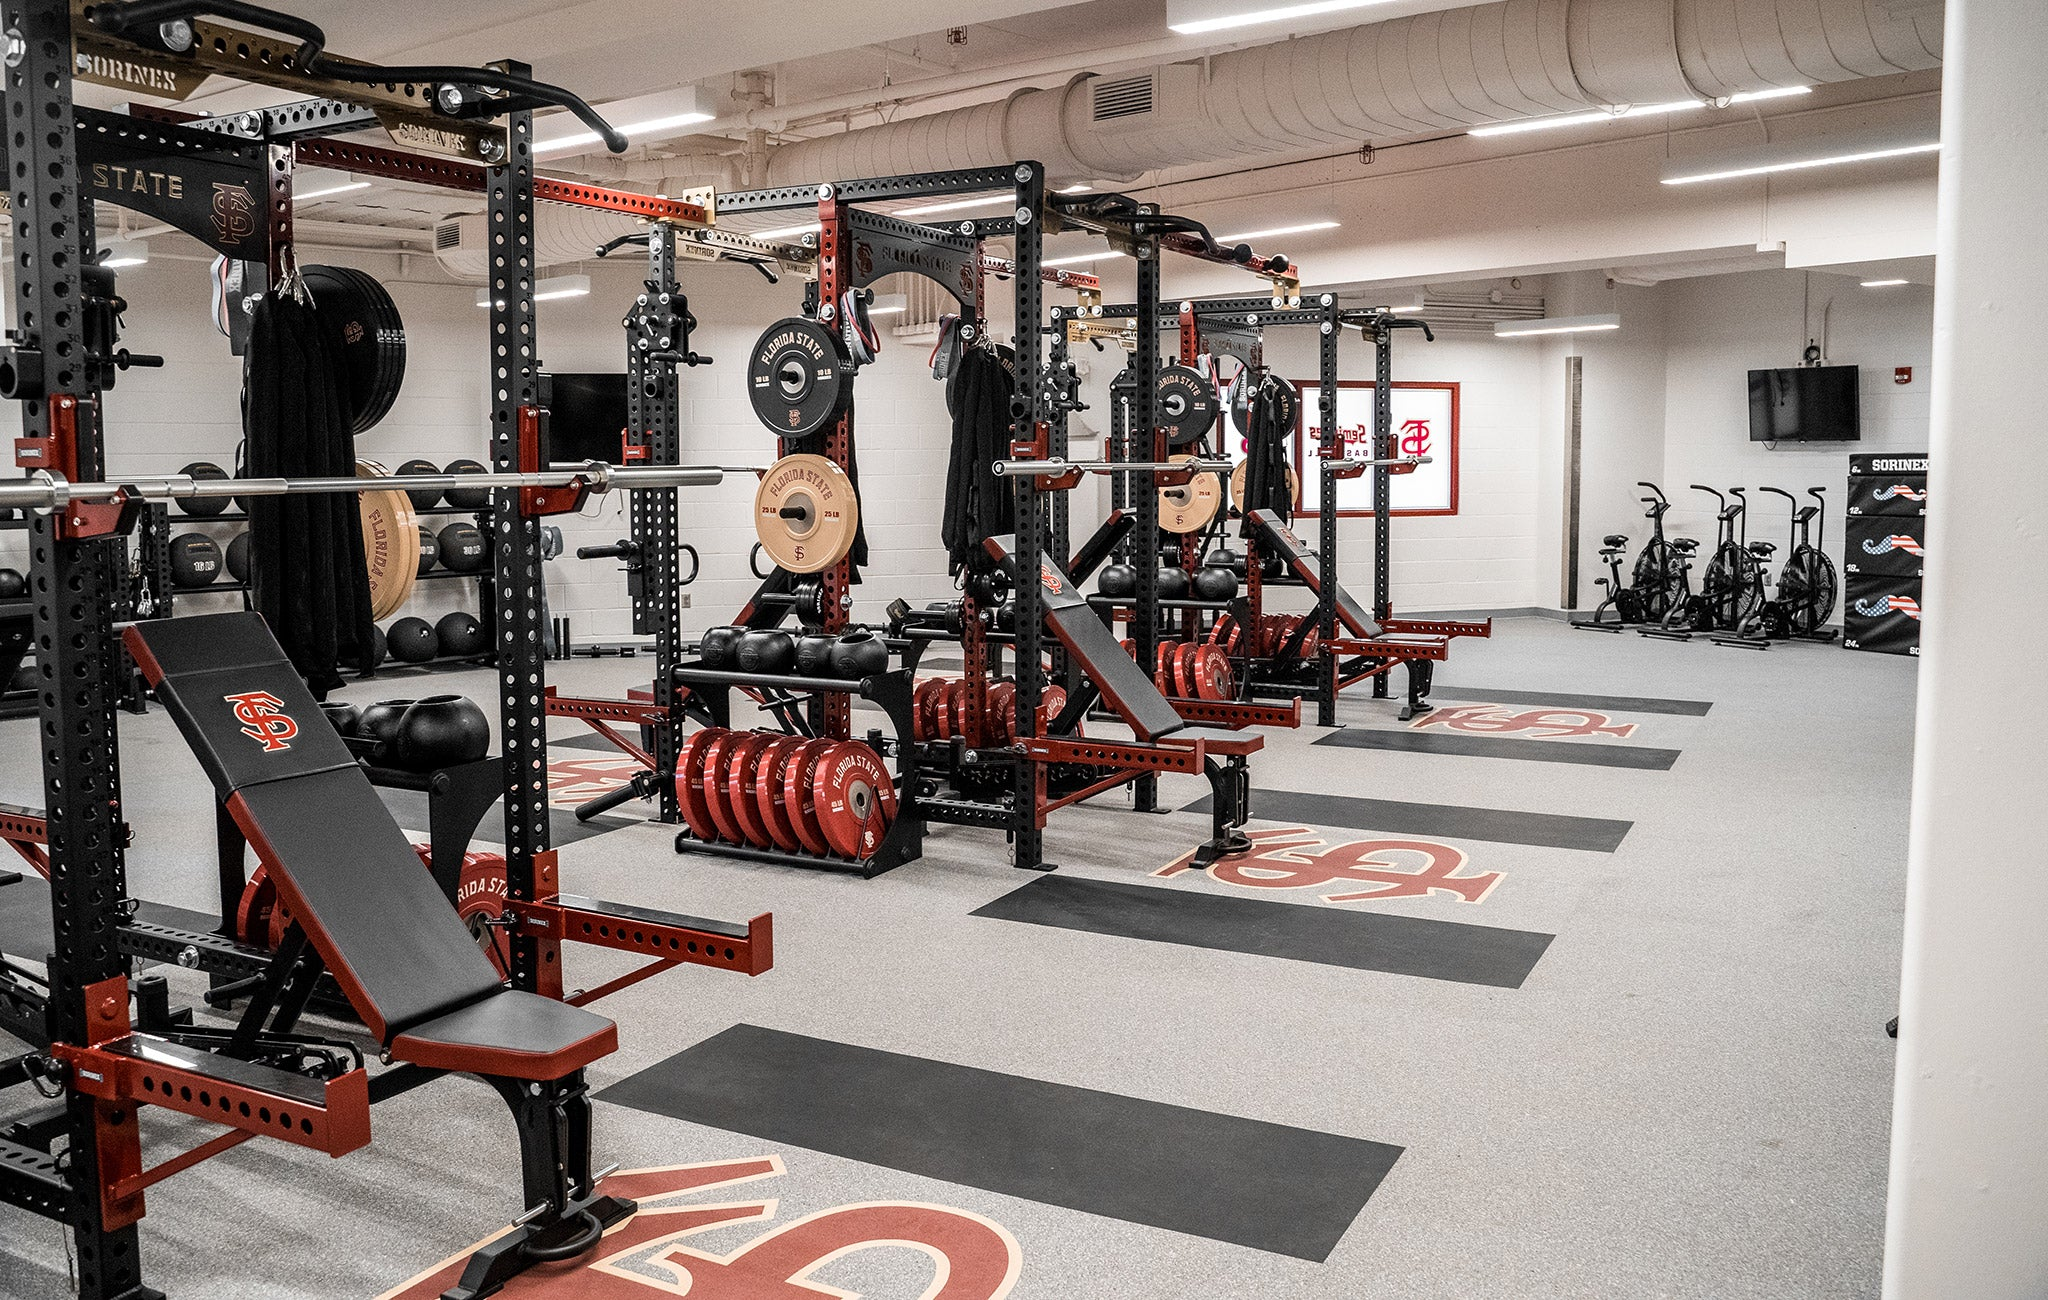 Florida State University Weight Room